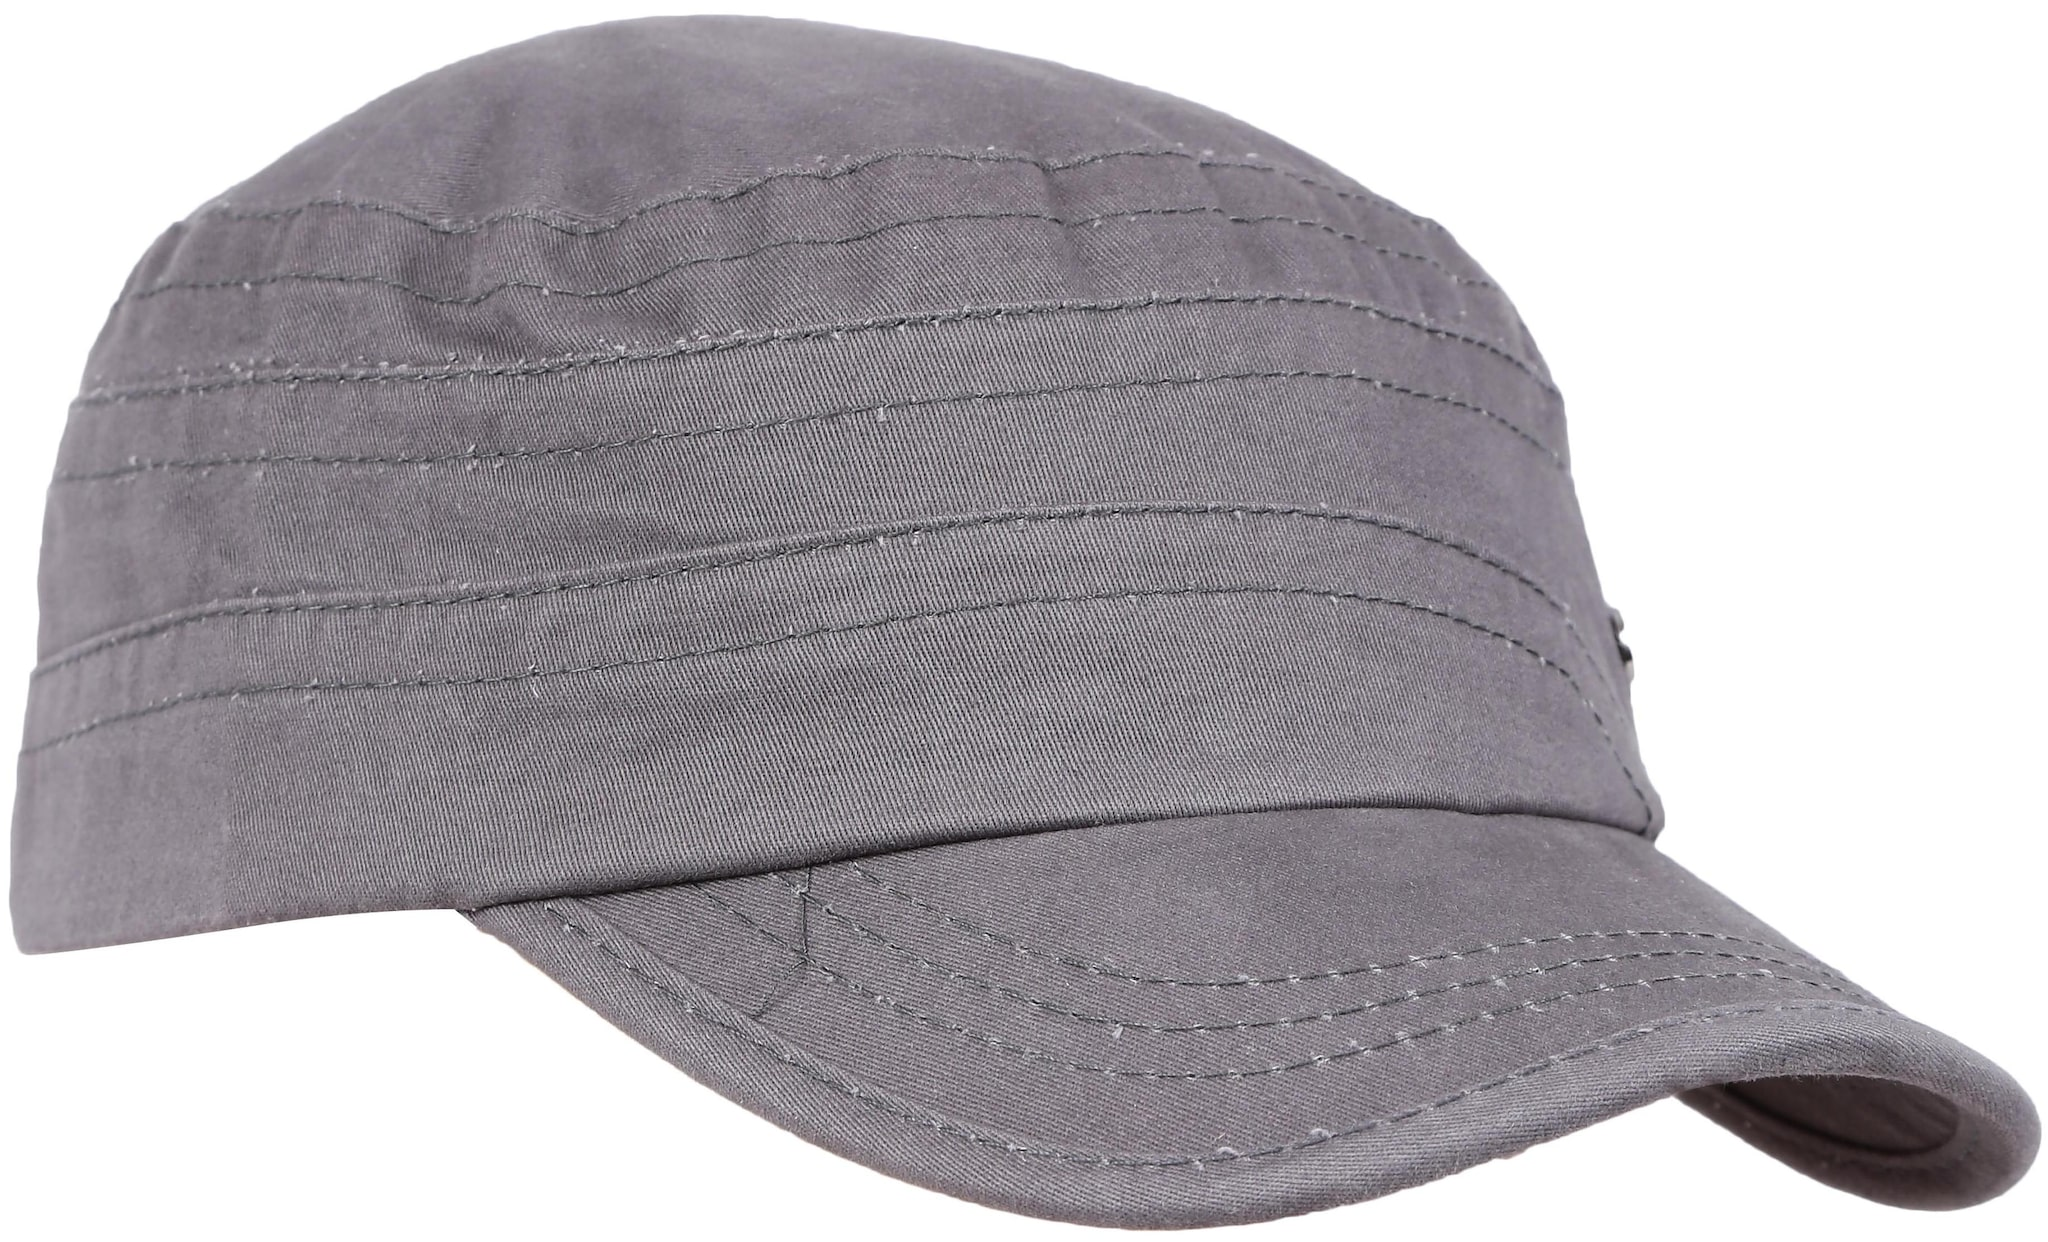 abb78b3fd Buy FabSeasons Cotton Short peak unisex cap for summers With adjustable  strap at the back Online at Low Prices in India - Paytmmall.com